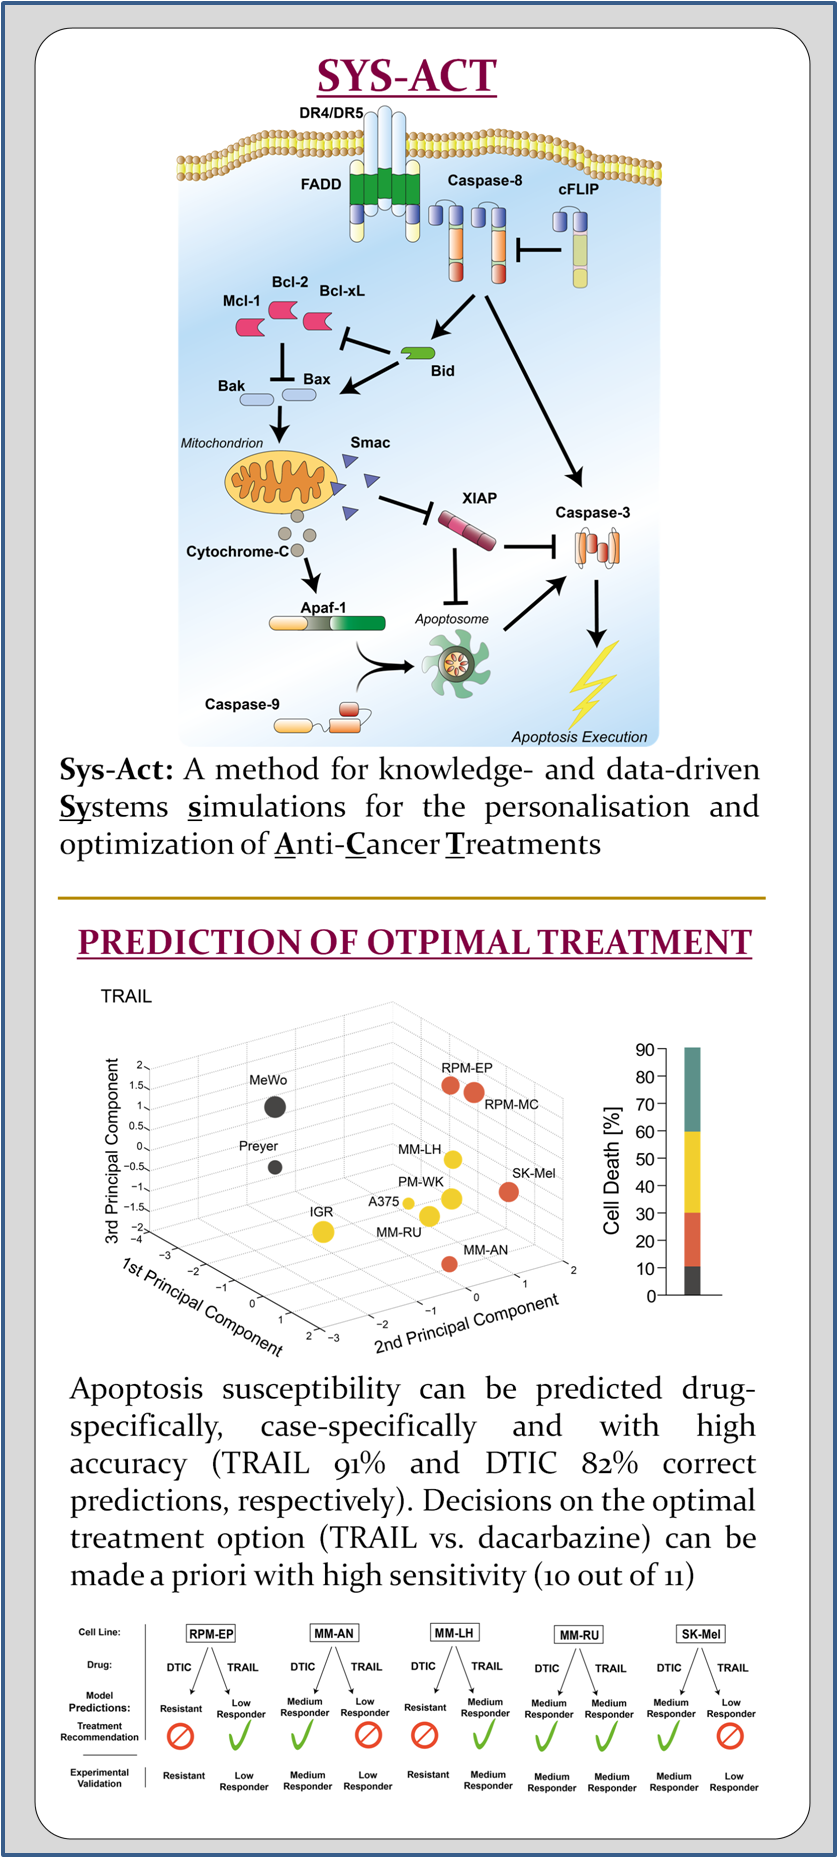 Systems simulations for the personalisation and optimization of Anti-Cancer Treatments